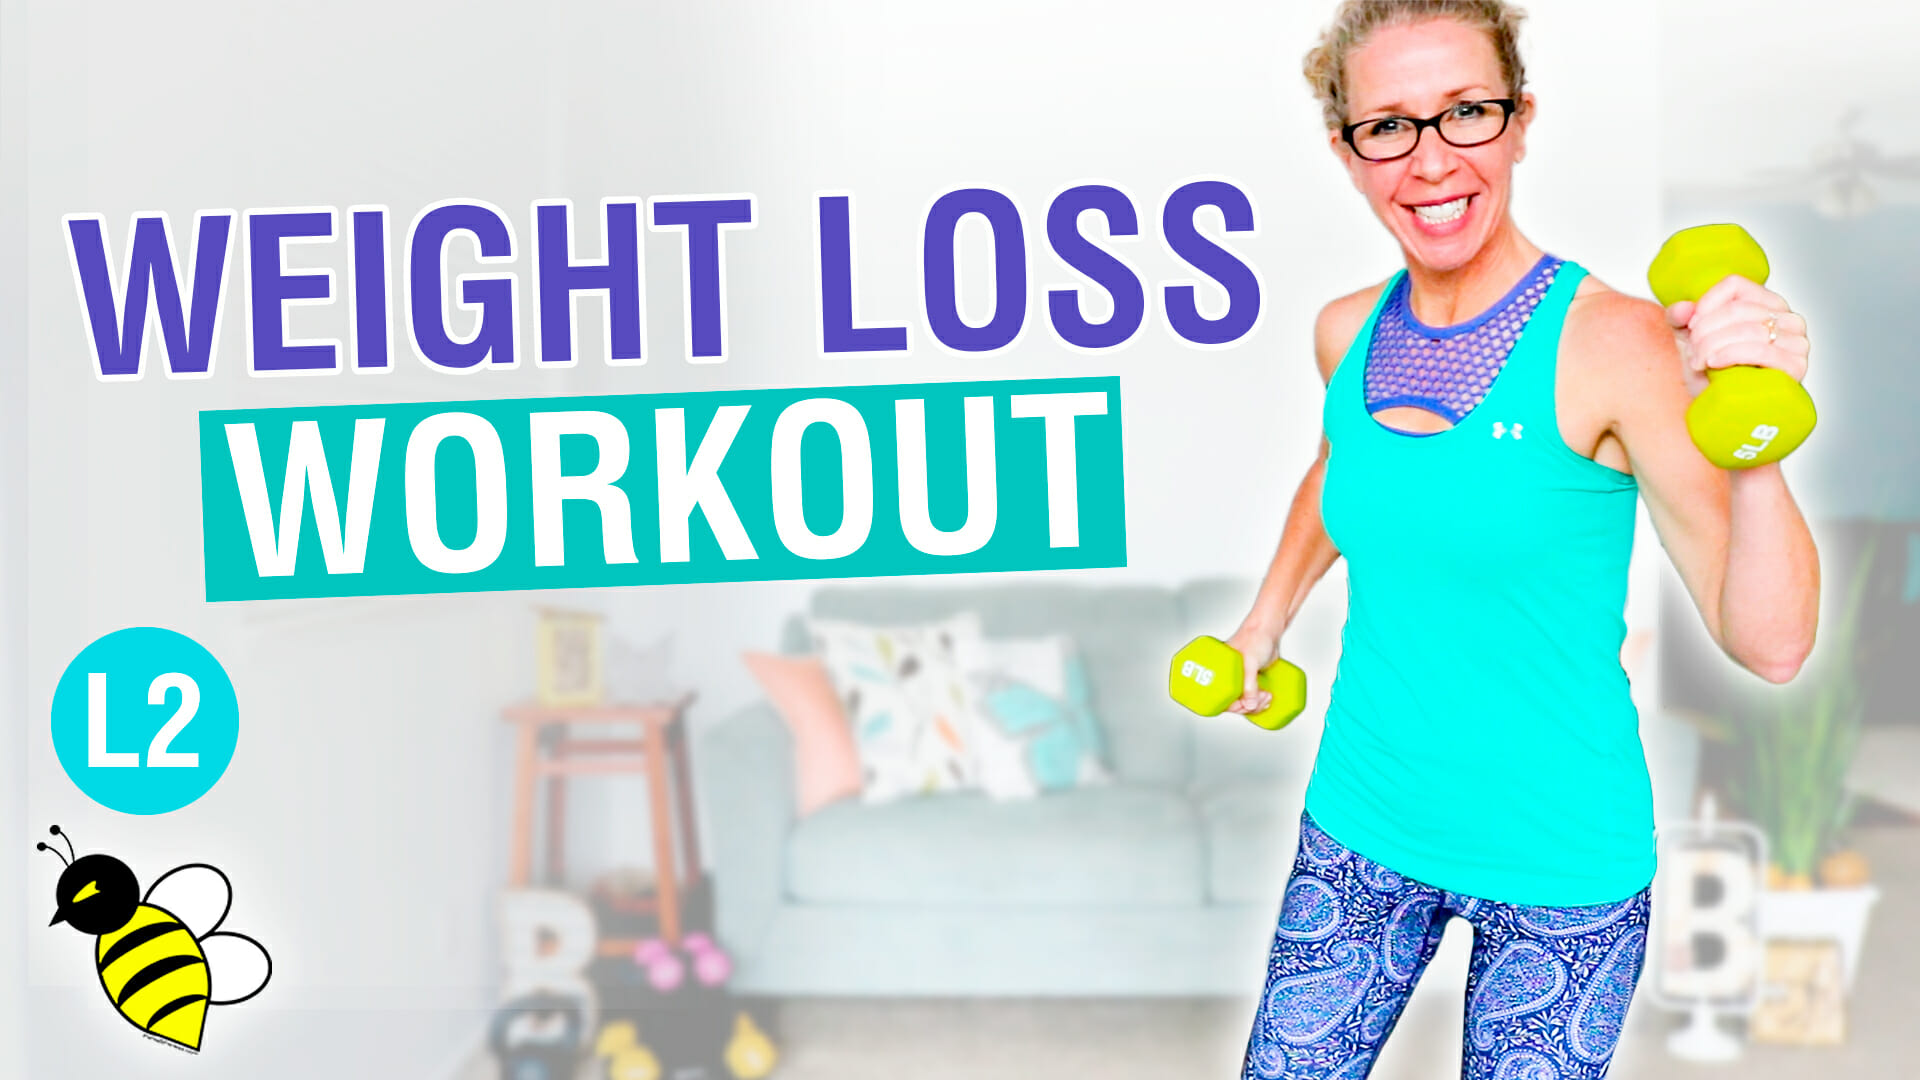 Weight Loss workout for BEGINNERS 30 minute cardio + weights without jumping